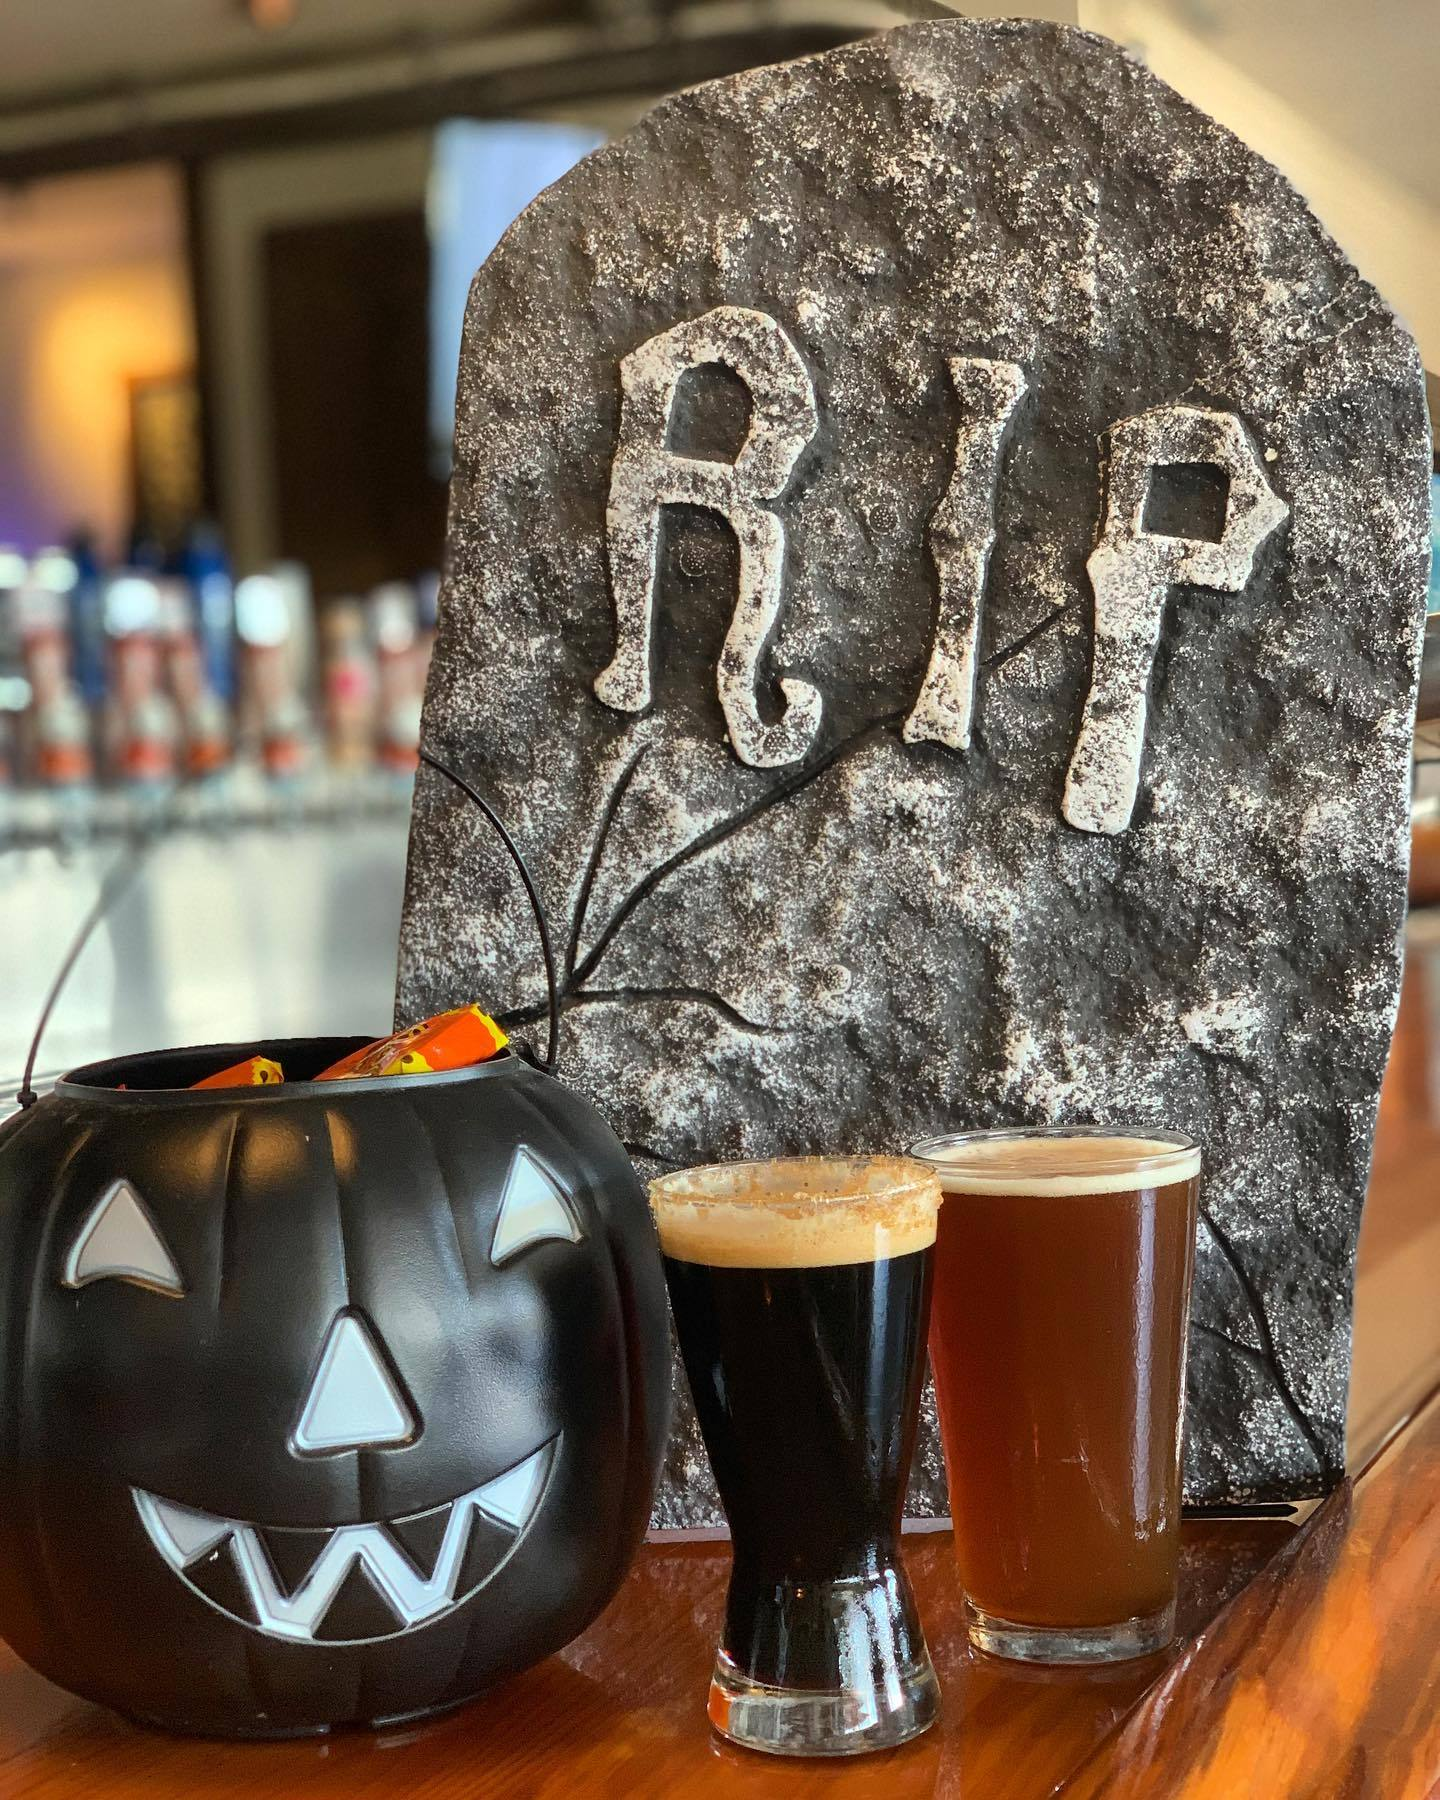 Happy Halloween from Saltwater Brewery!